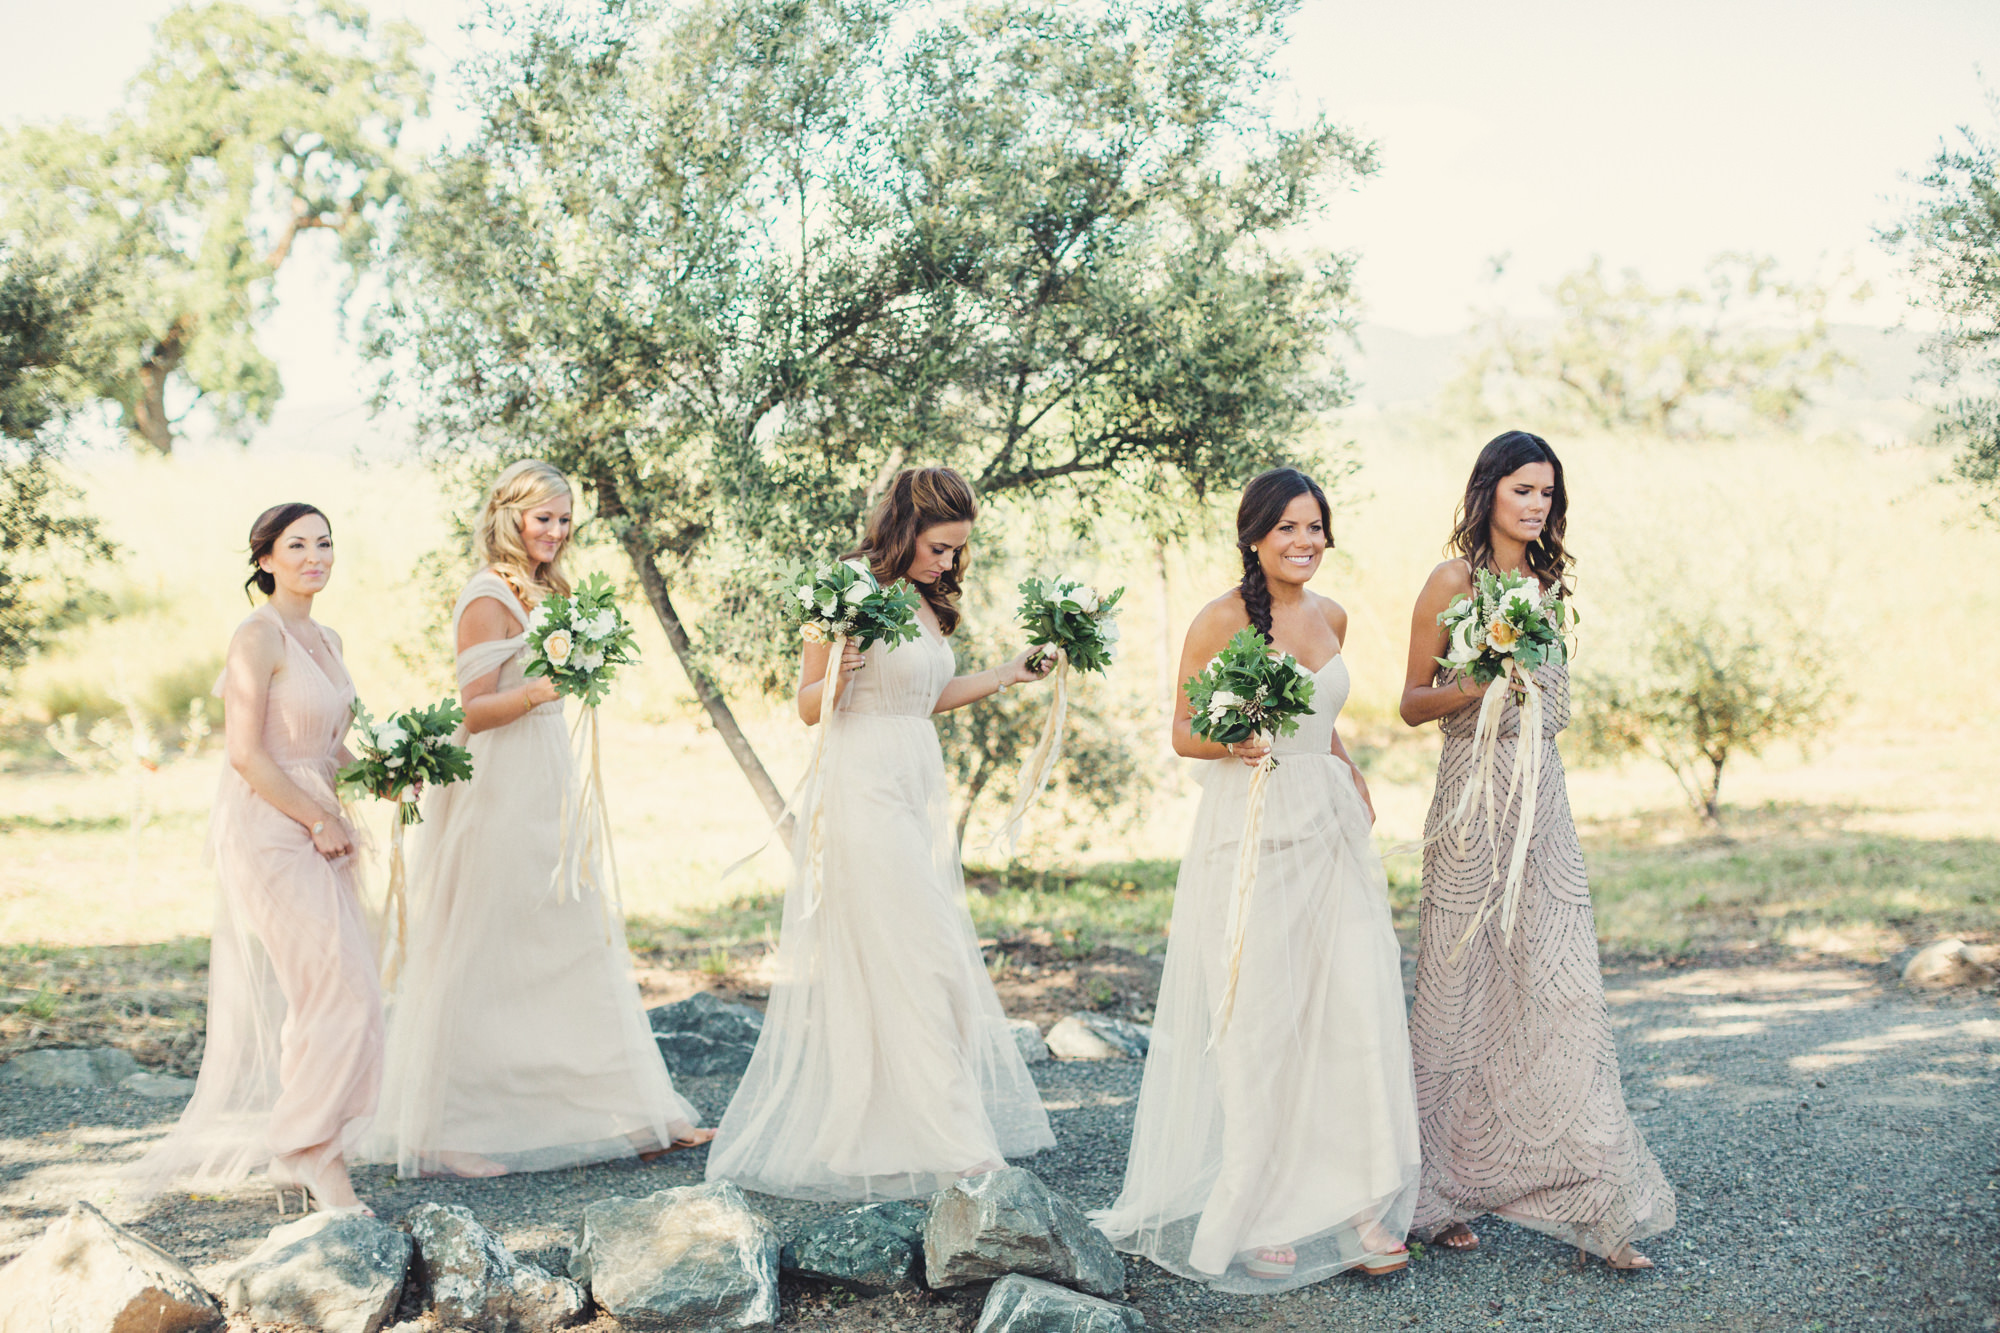 Wedding in Campovida @Anne-Claire Brun 37